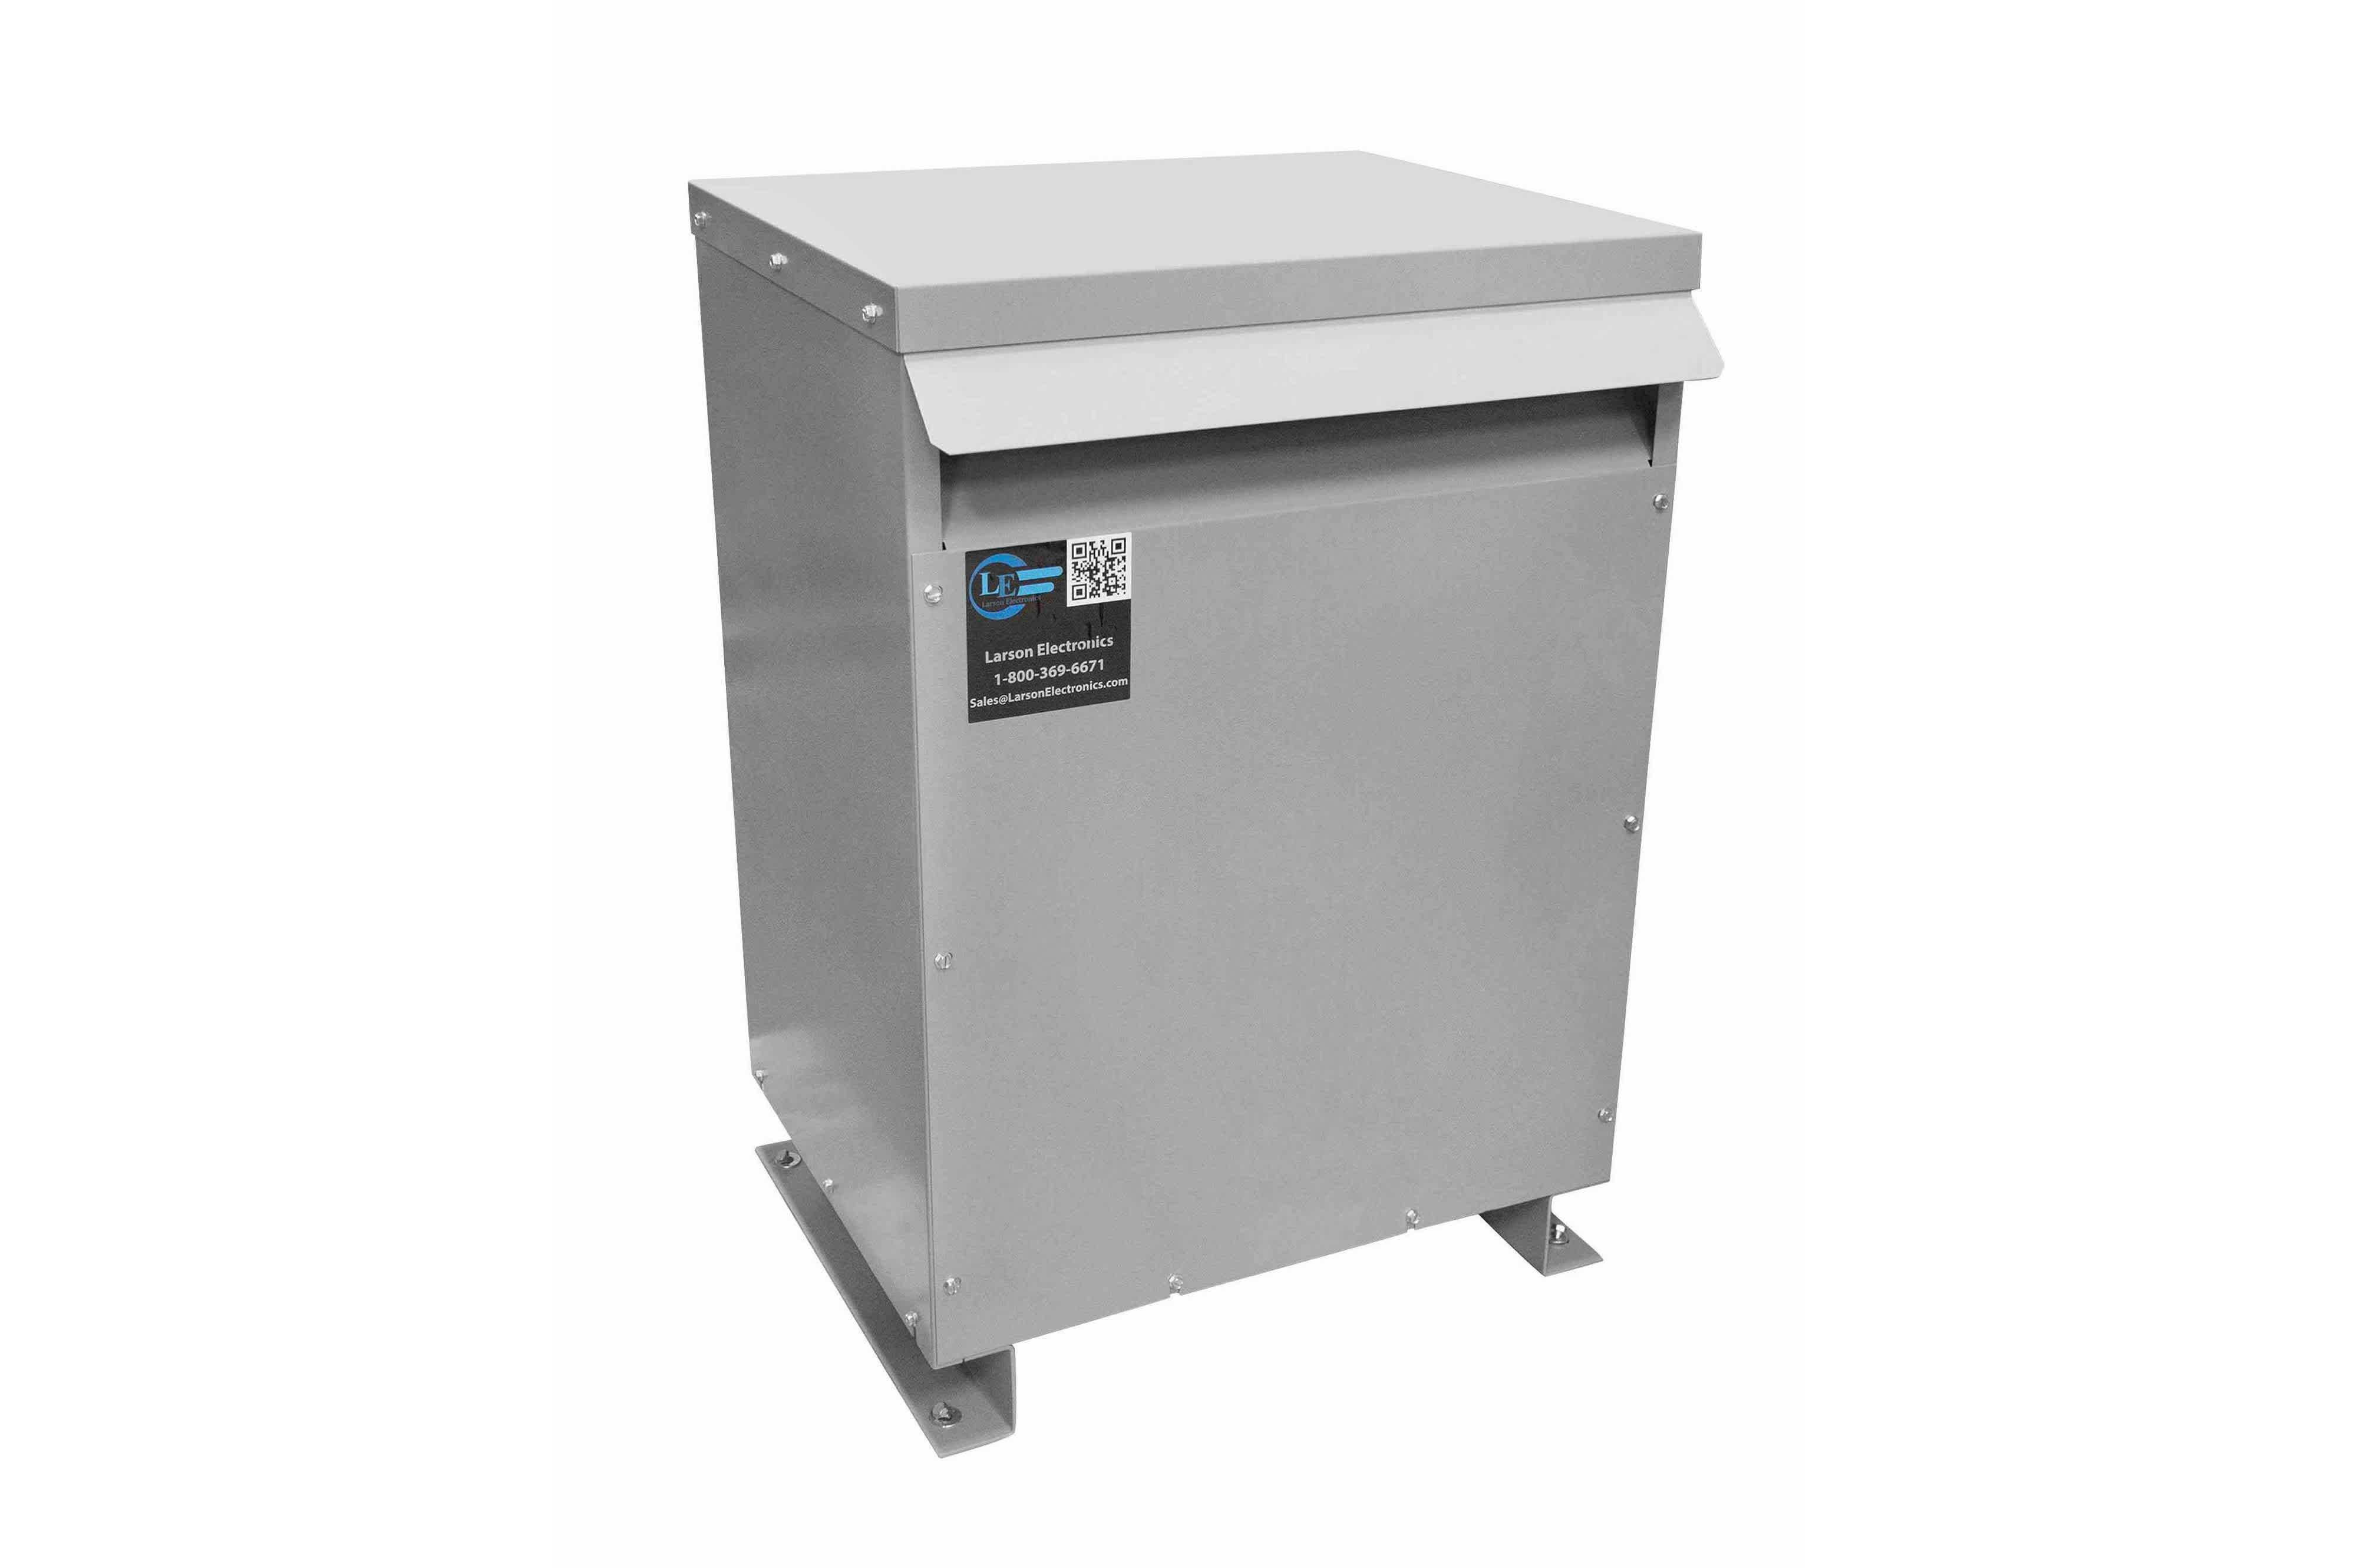 22.5 kVA 3PH Isolation Transformer, 600V Wye Primary, 208V Delta Secondary, N3R, Ventilated, 60 Hz